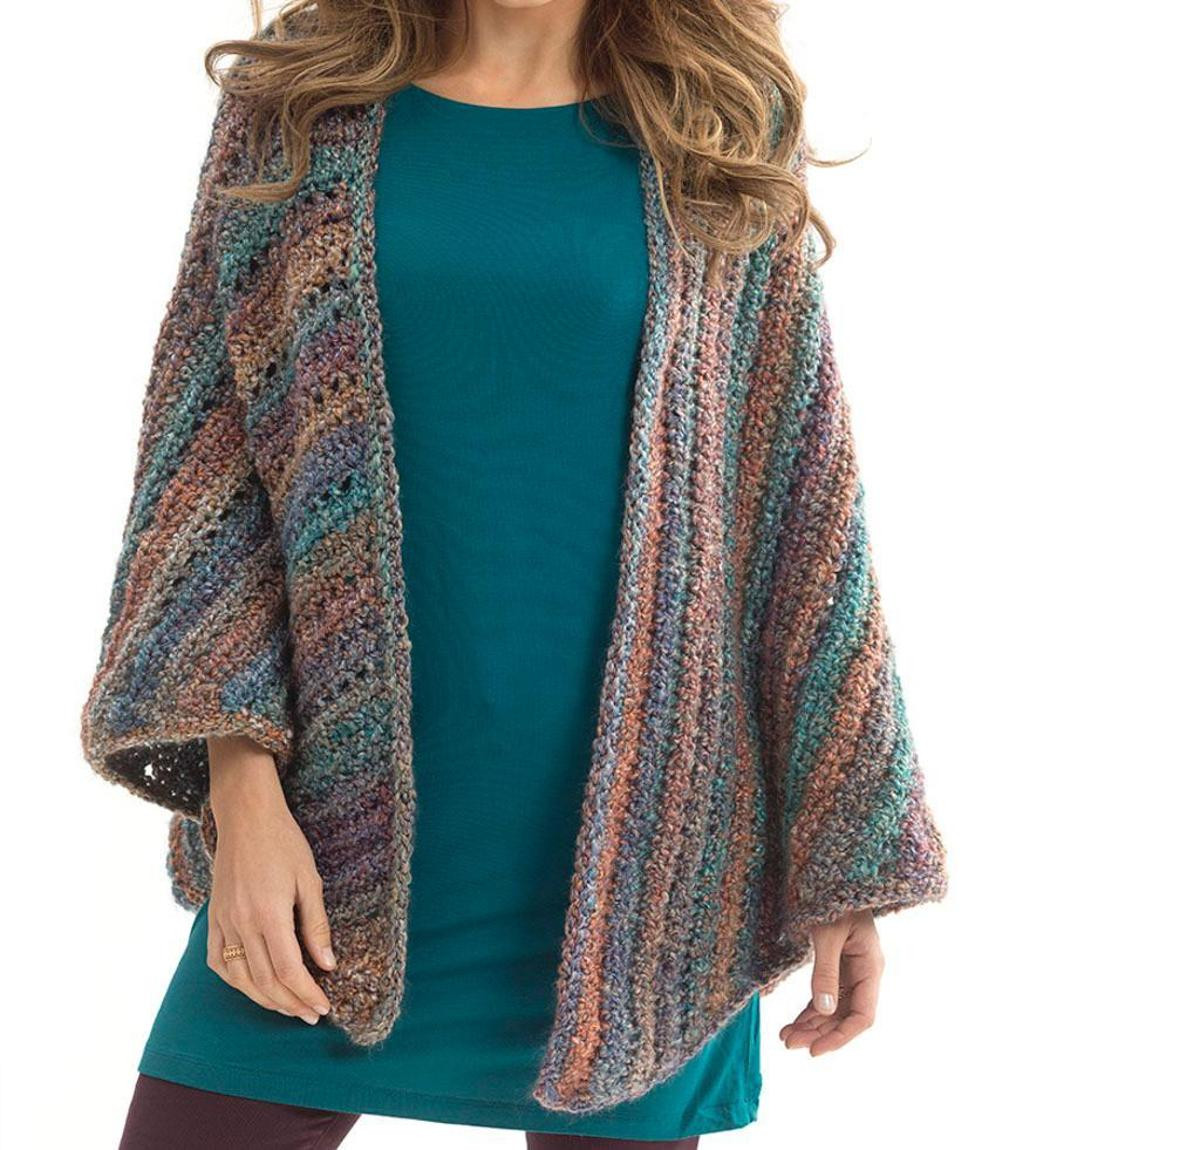 Crochet Kits Awesome Neck S Best Thing Shawl Crochet Kit Of Amazing 46 Images Crochet Kits